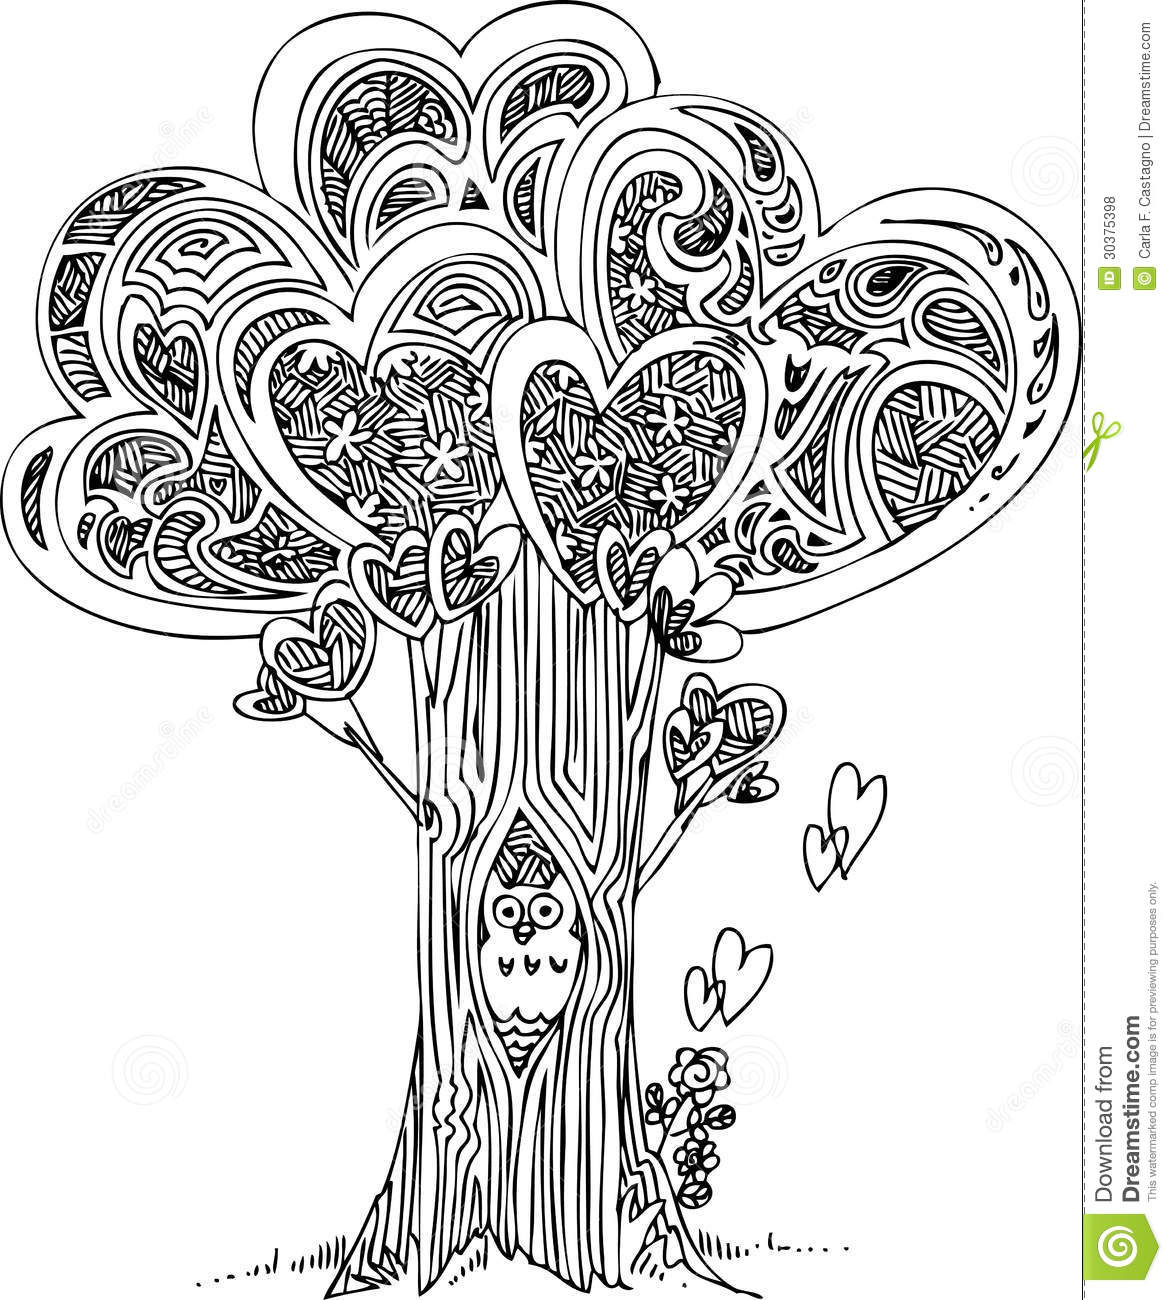 coloring tree of love royalty free stock photos